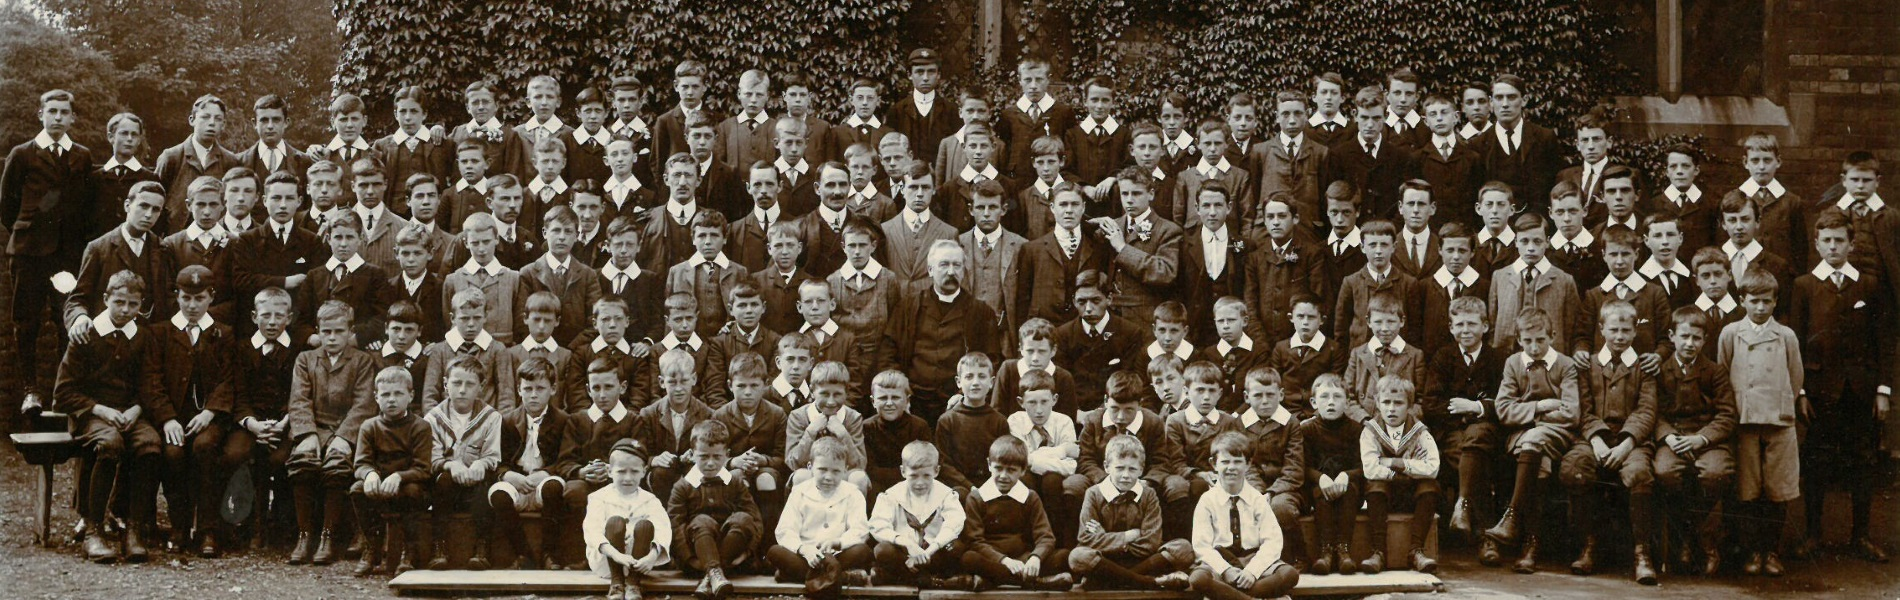 Headmaster Edwin Bean and the school, 1906